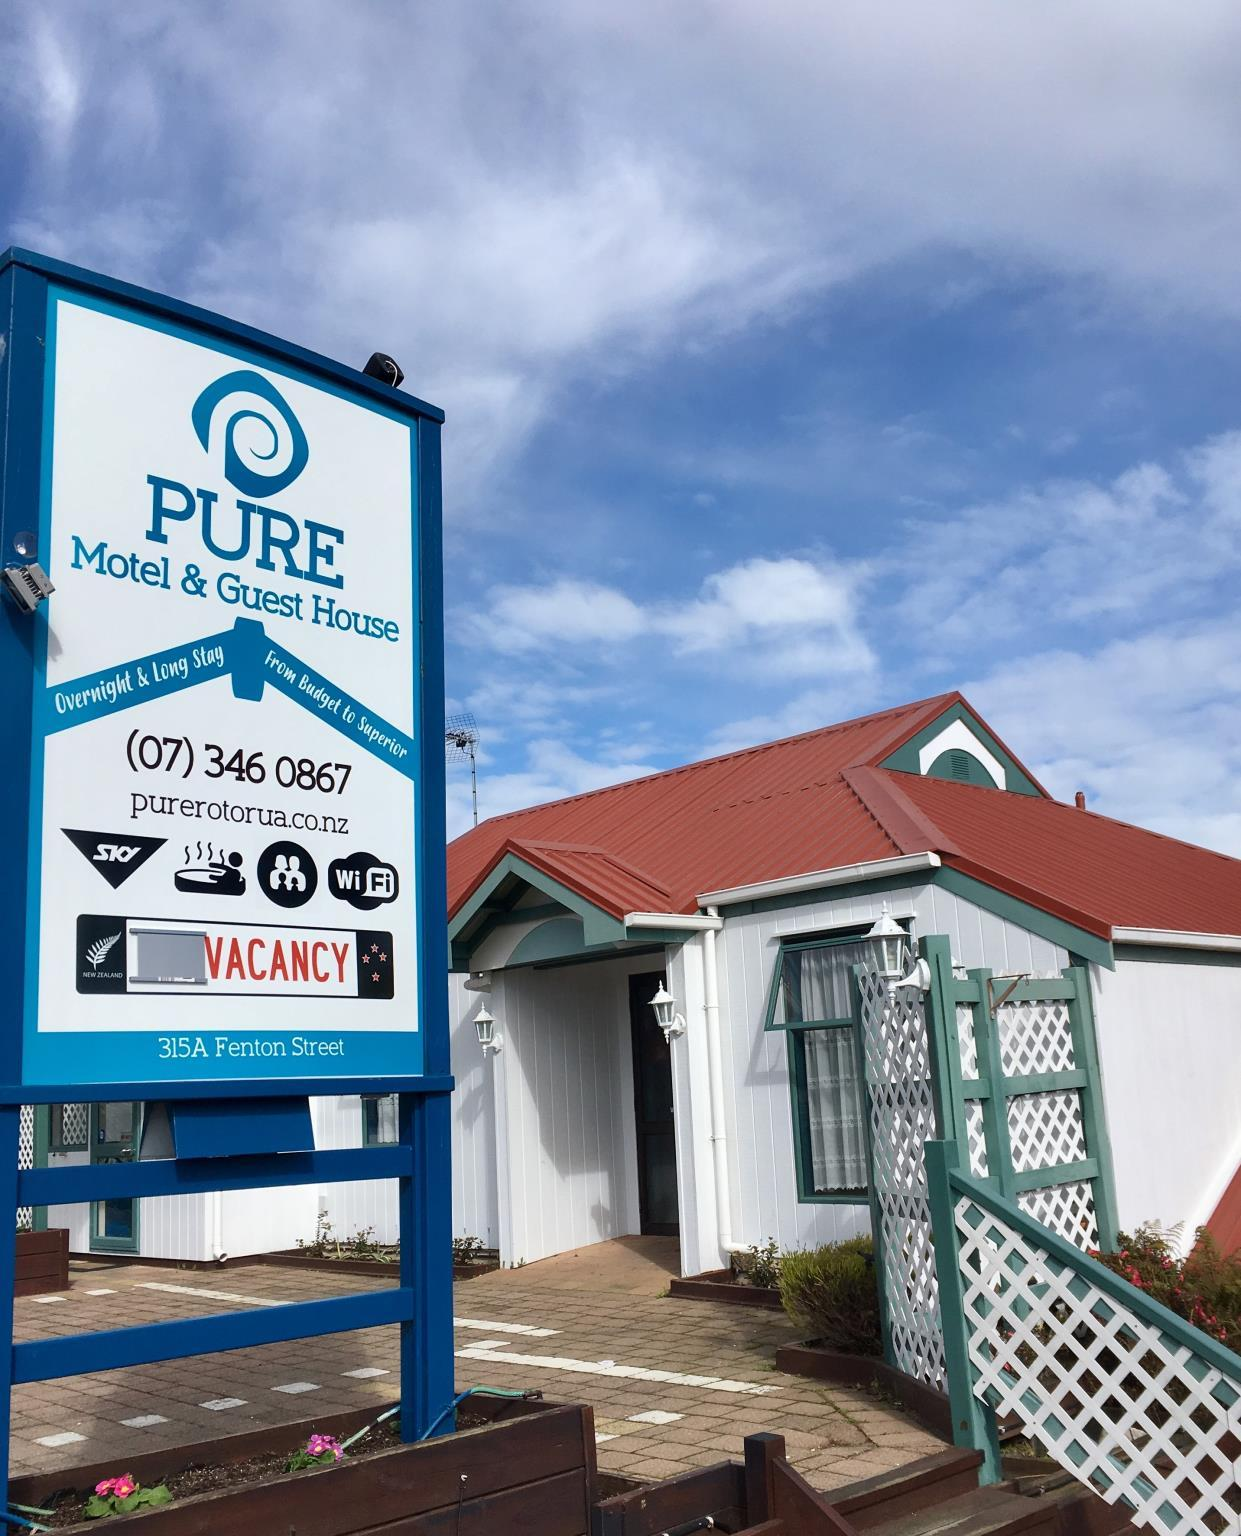 PURE Motel And Guest House